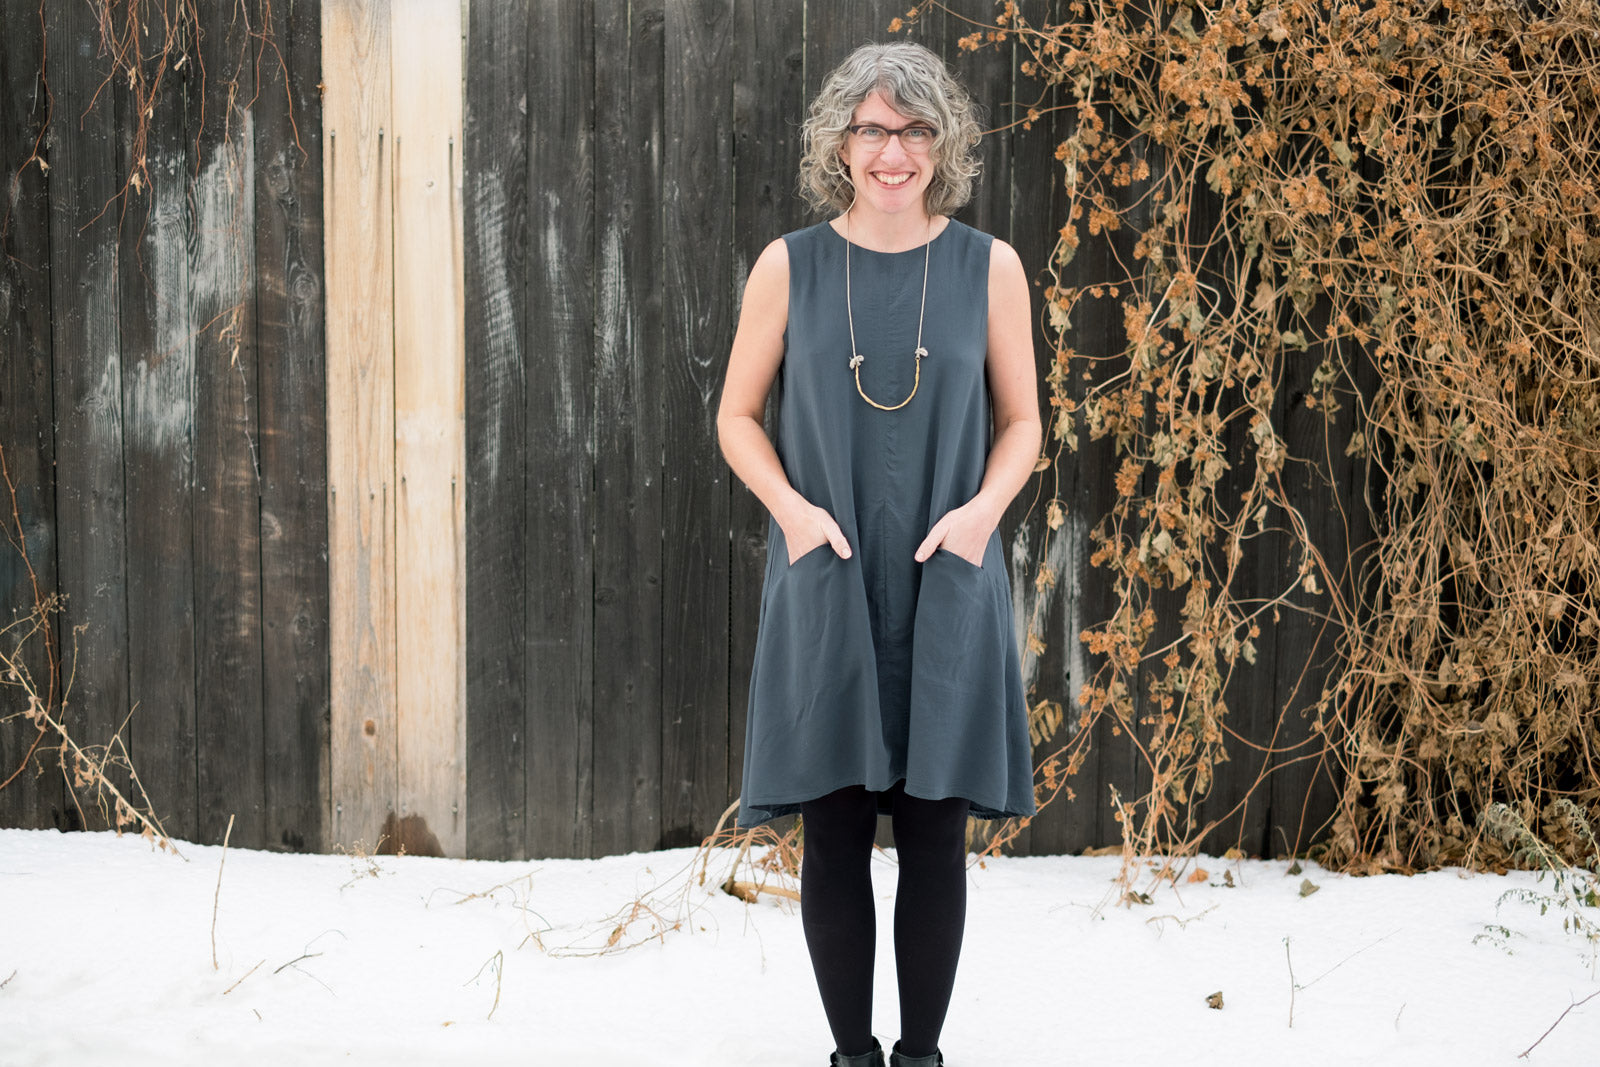 Jaime in Grainline Studio's Farrow Dress